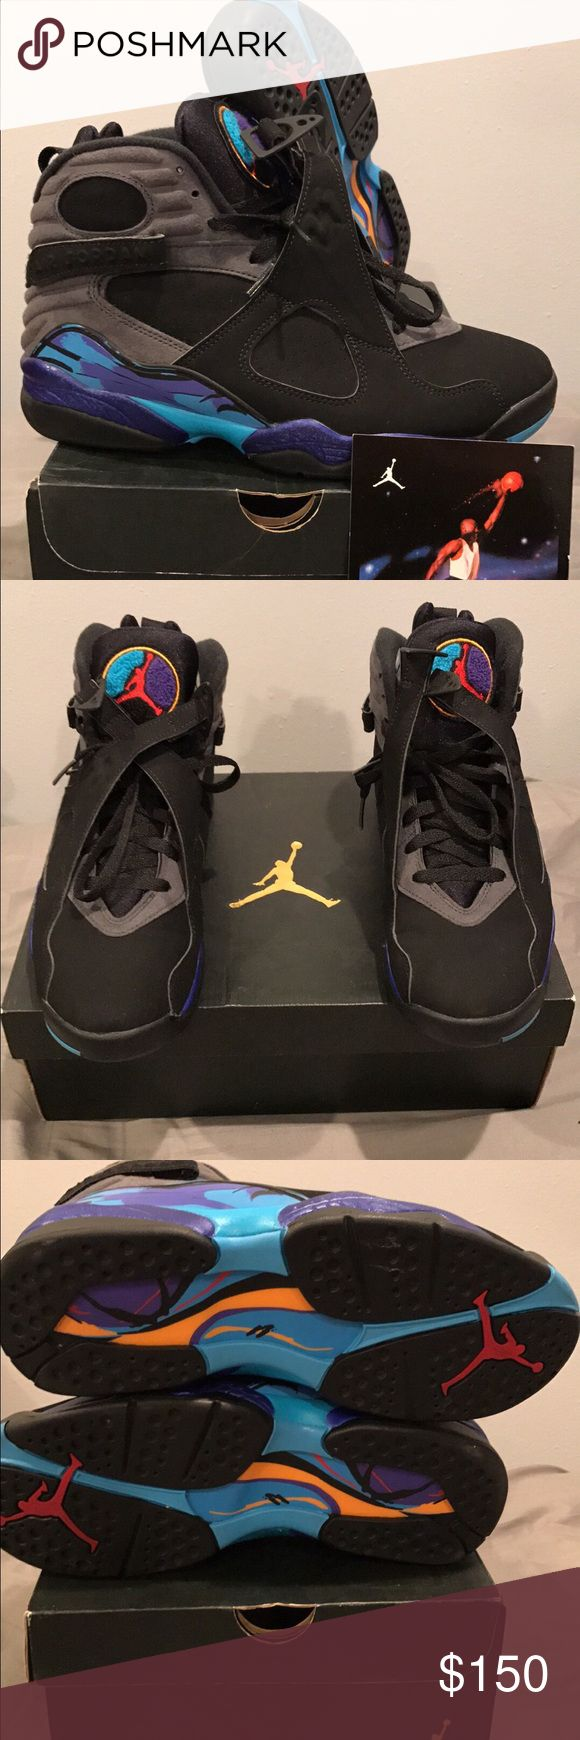 Jordan Aqua 8 Size 8.5.  Used.  9/10 excellent condition.  Comes with retro card and original box Jordan Shoes Sneakers